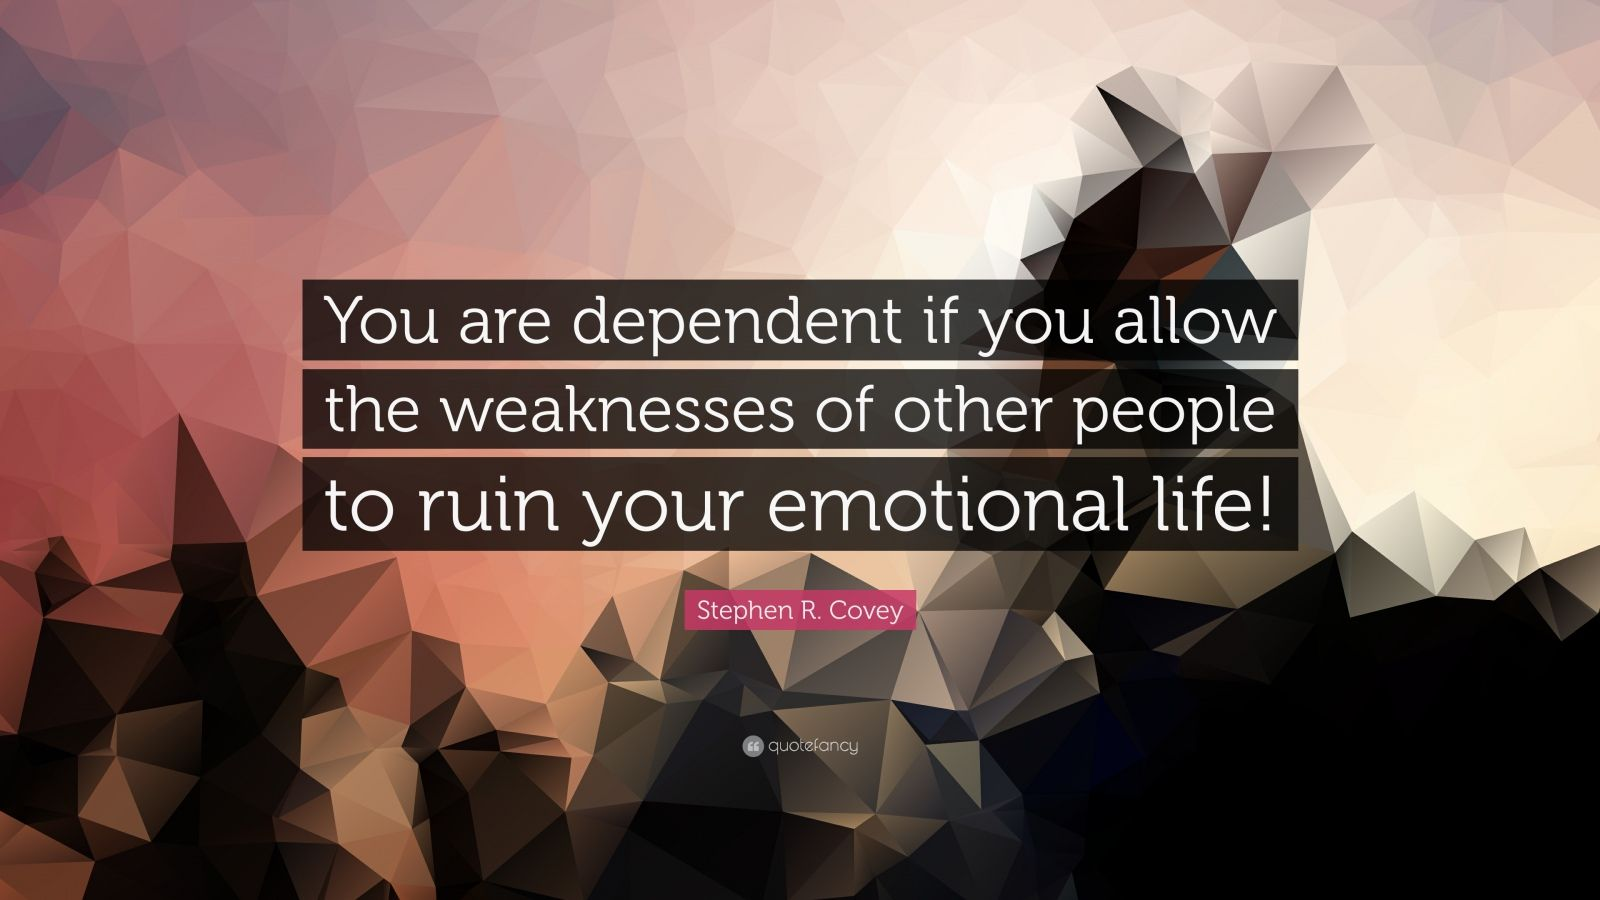 """Stephen R. Covey Quote: """"You are dependent if you allow the weaknesses of other people to ruin your emotional life!"""""""